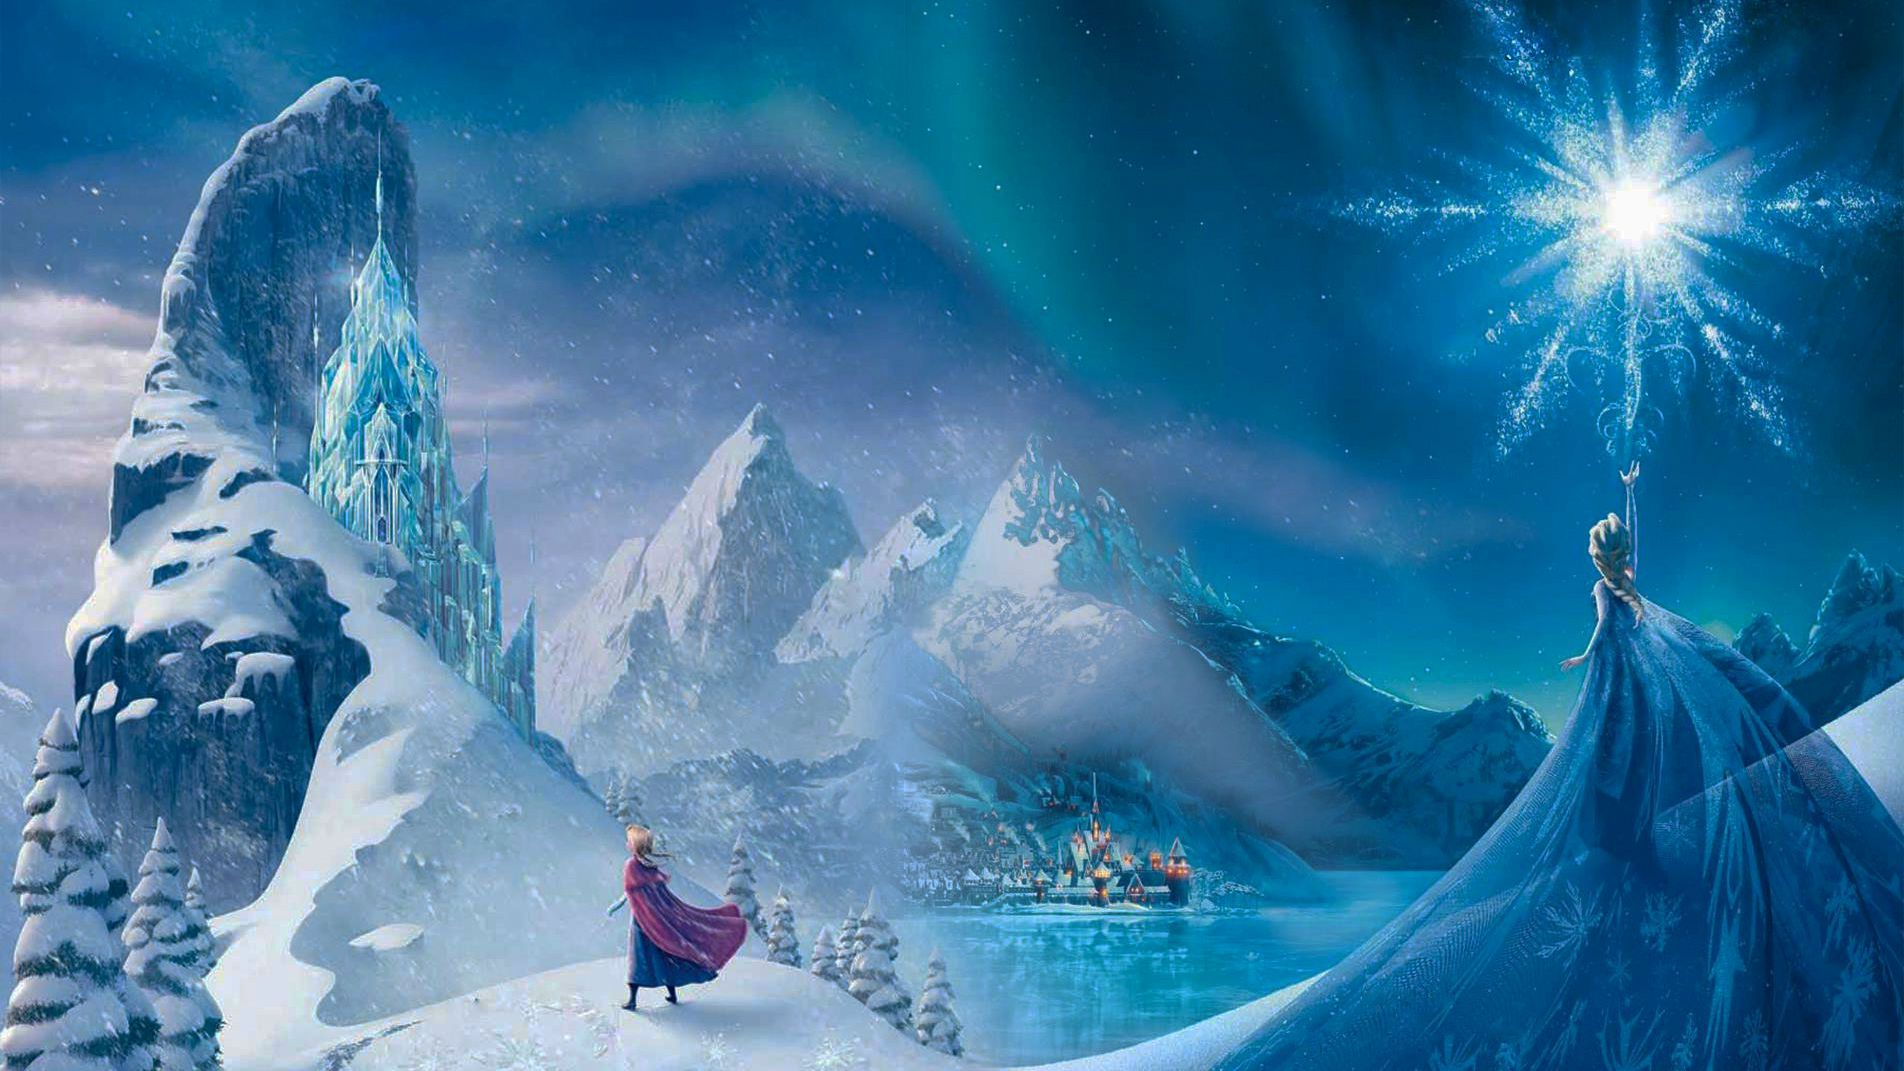 frozen-wallpaper-cool-wb3u33yp.jpg